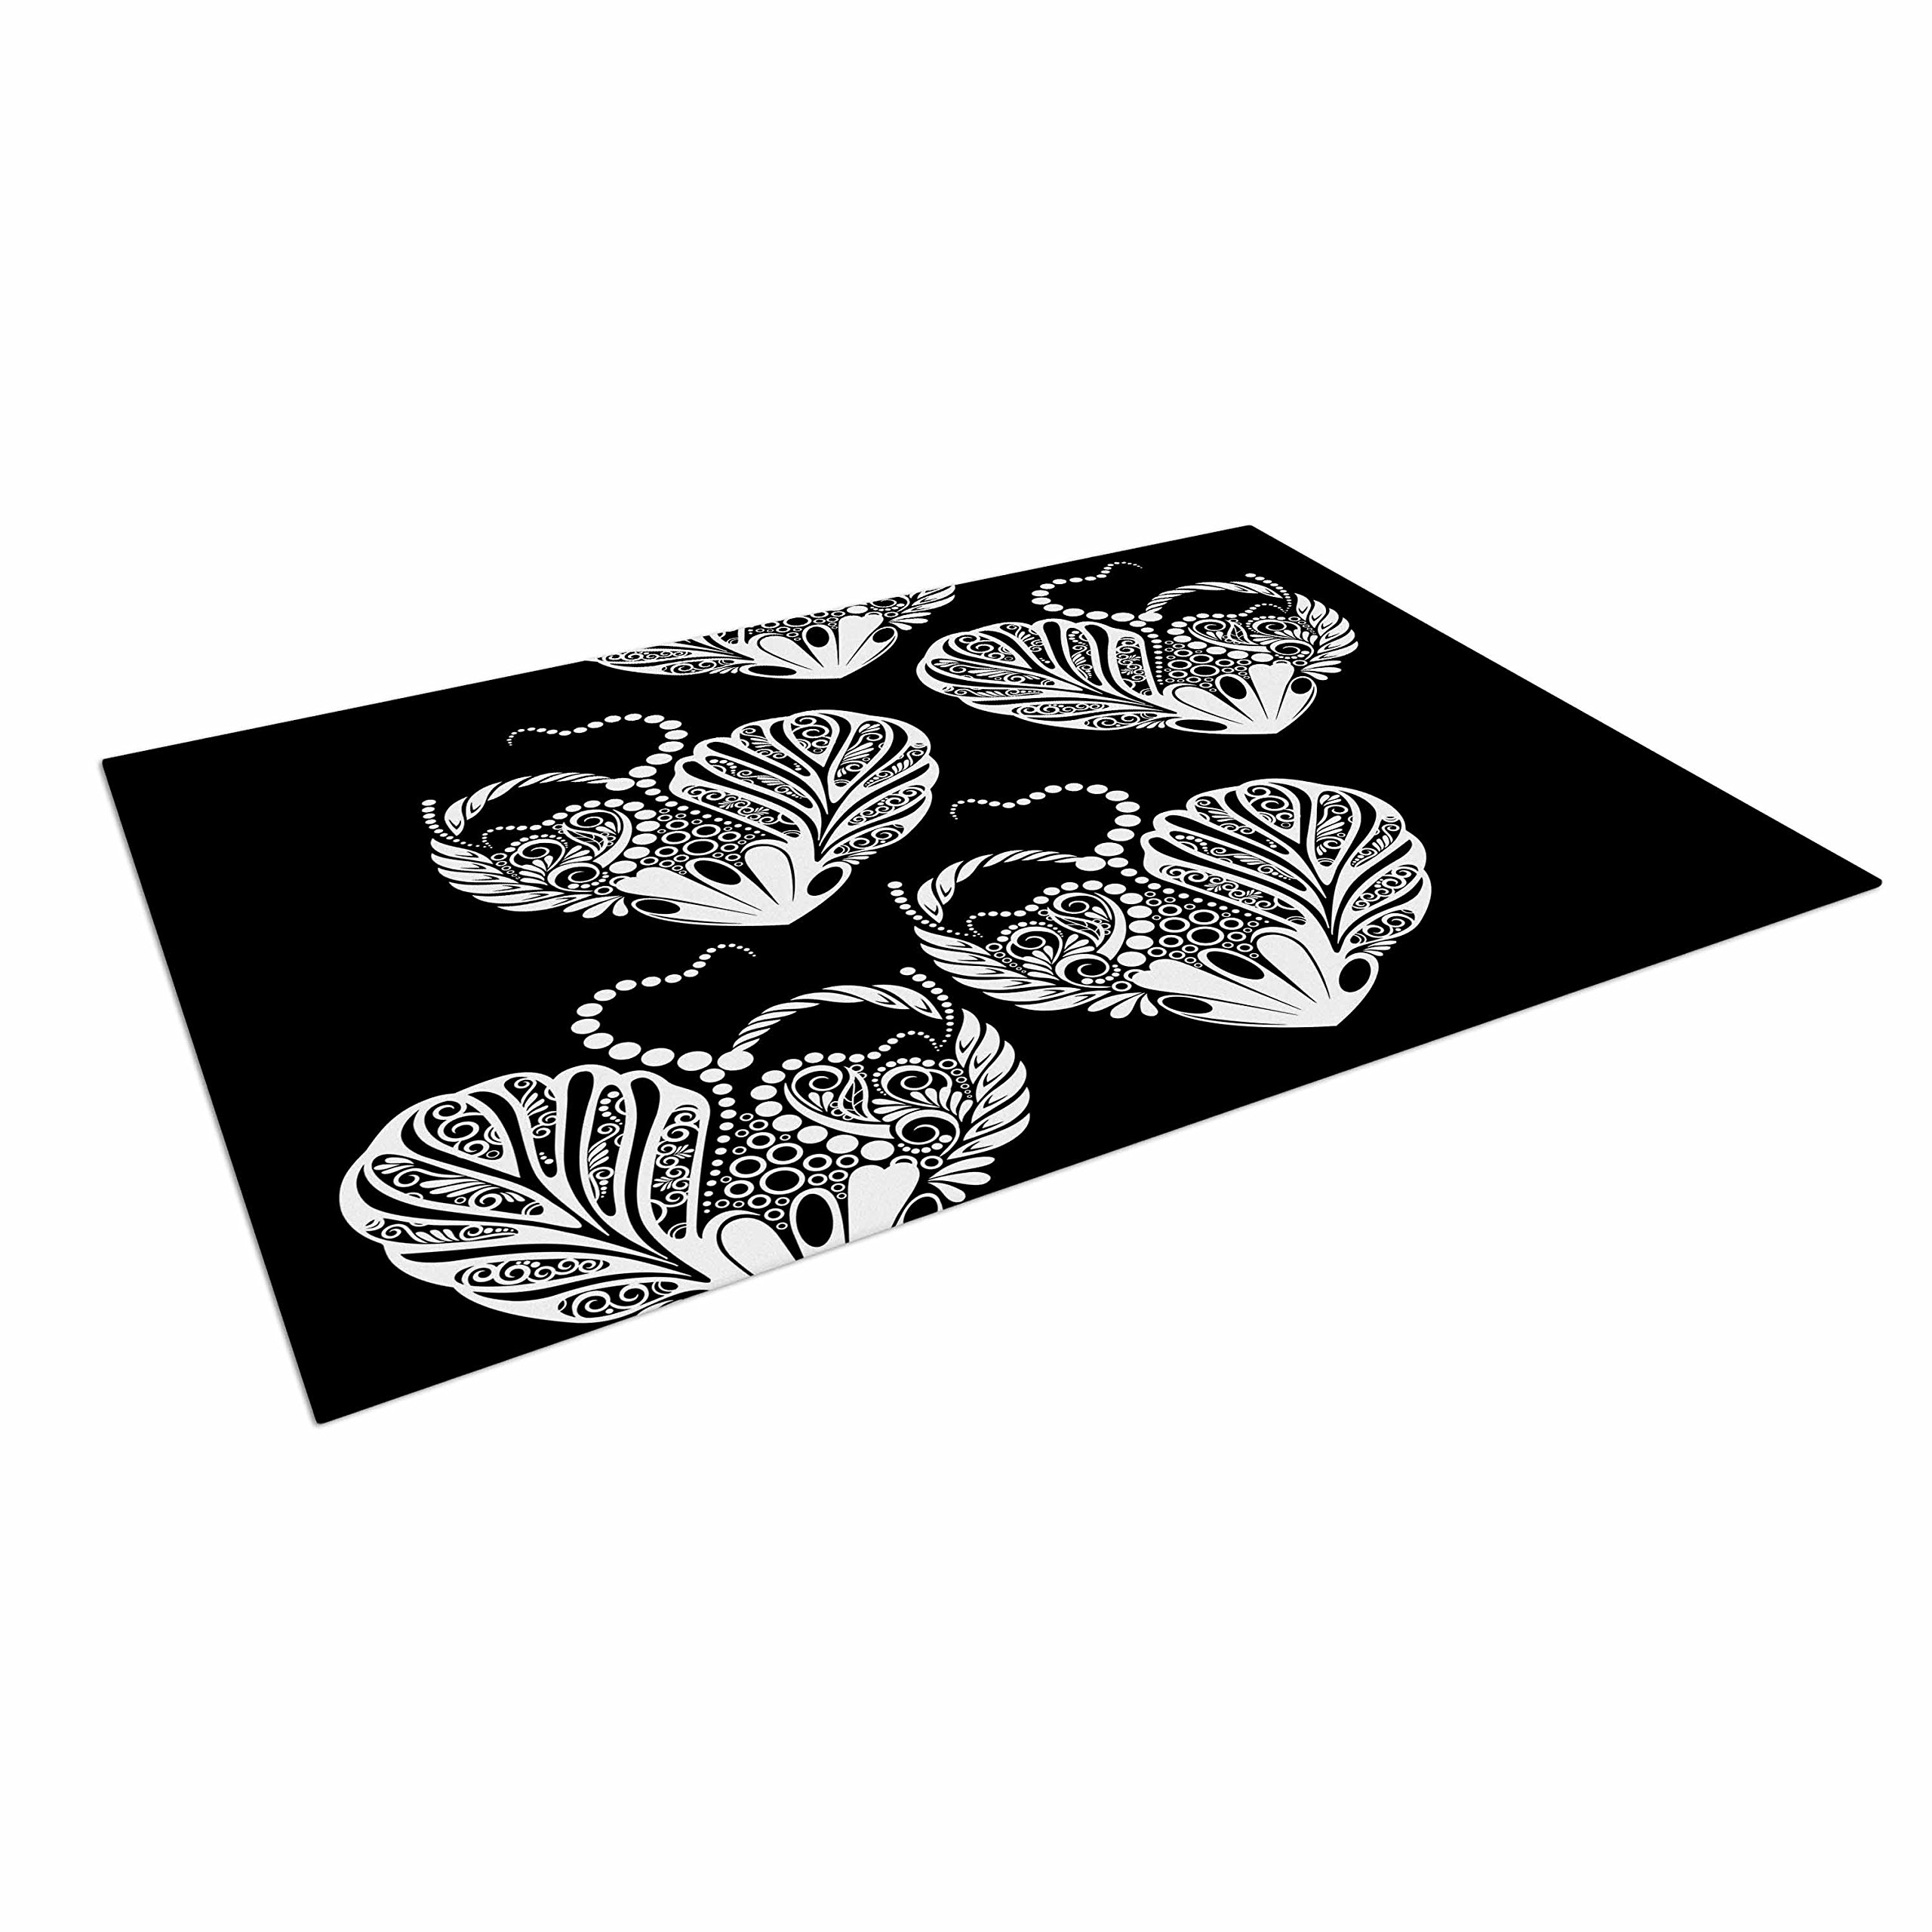 KESS InHouse Maria Bazarova ''Heart'' White Love Outdoor Floor Mat, 4' x 5'